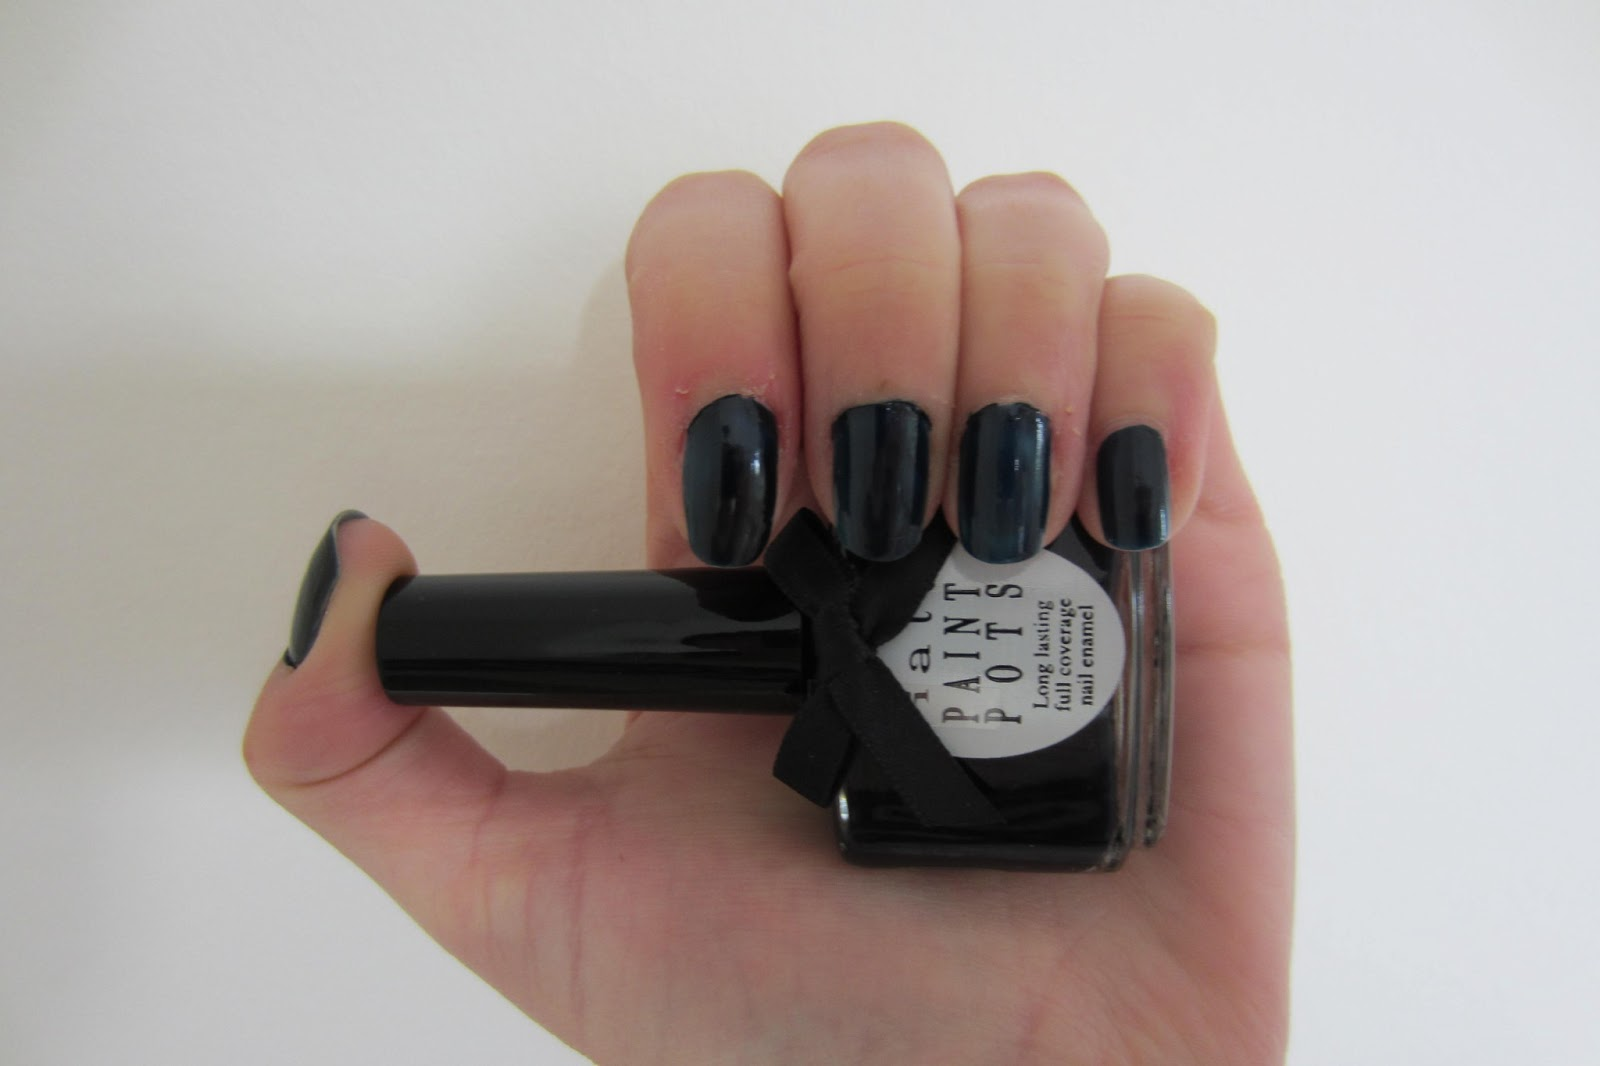 Bella and Robot: NOTD Manicure Monday Ciate Paint Pot 3am Girl